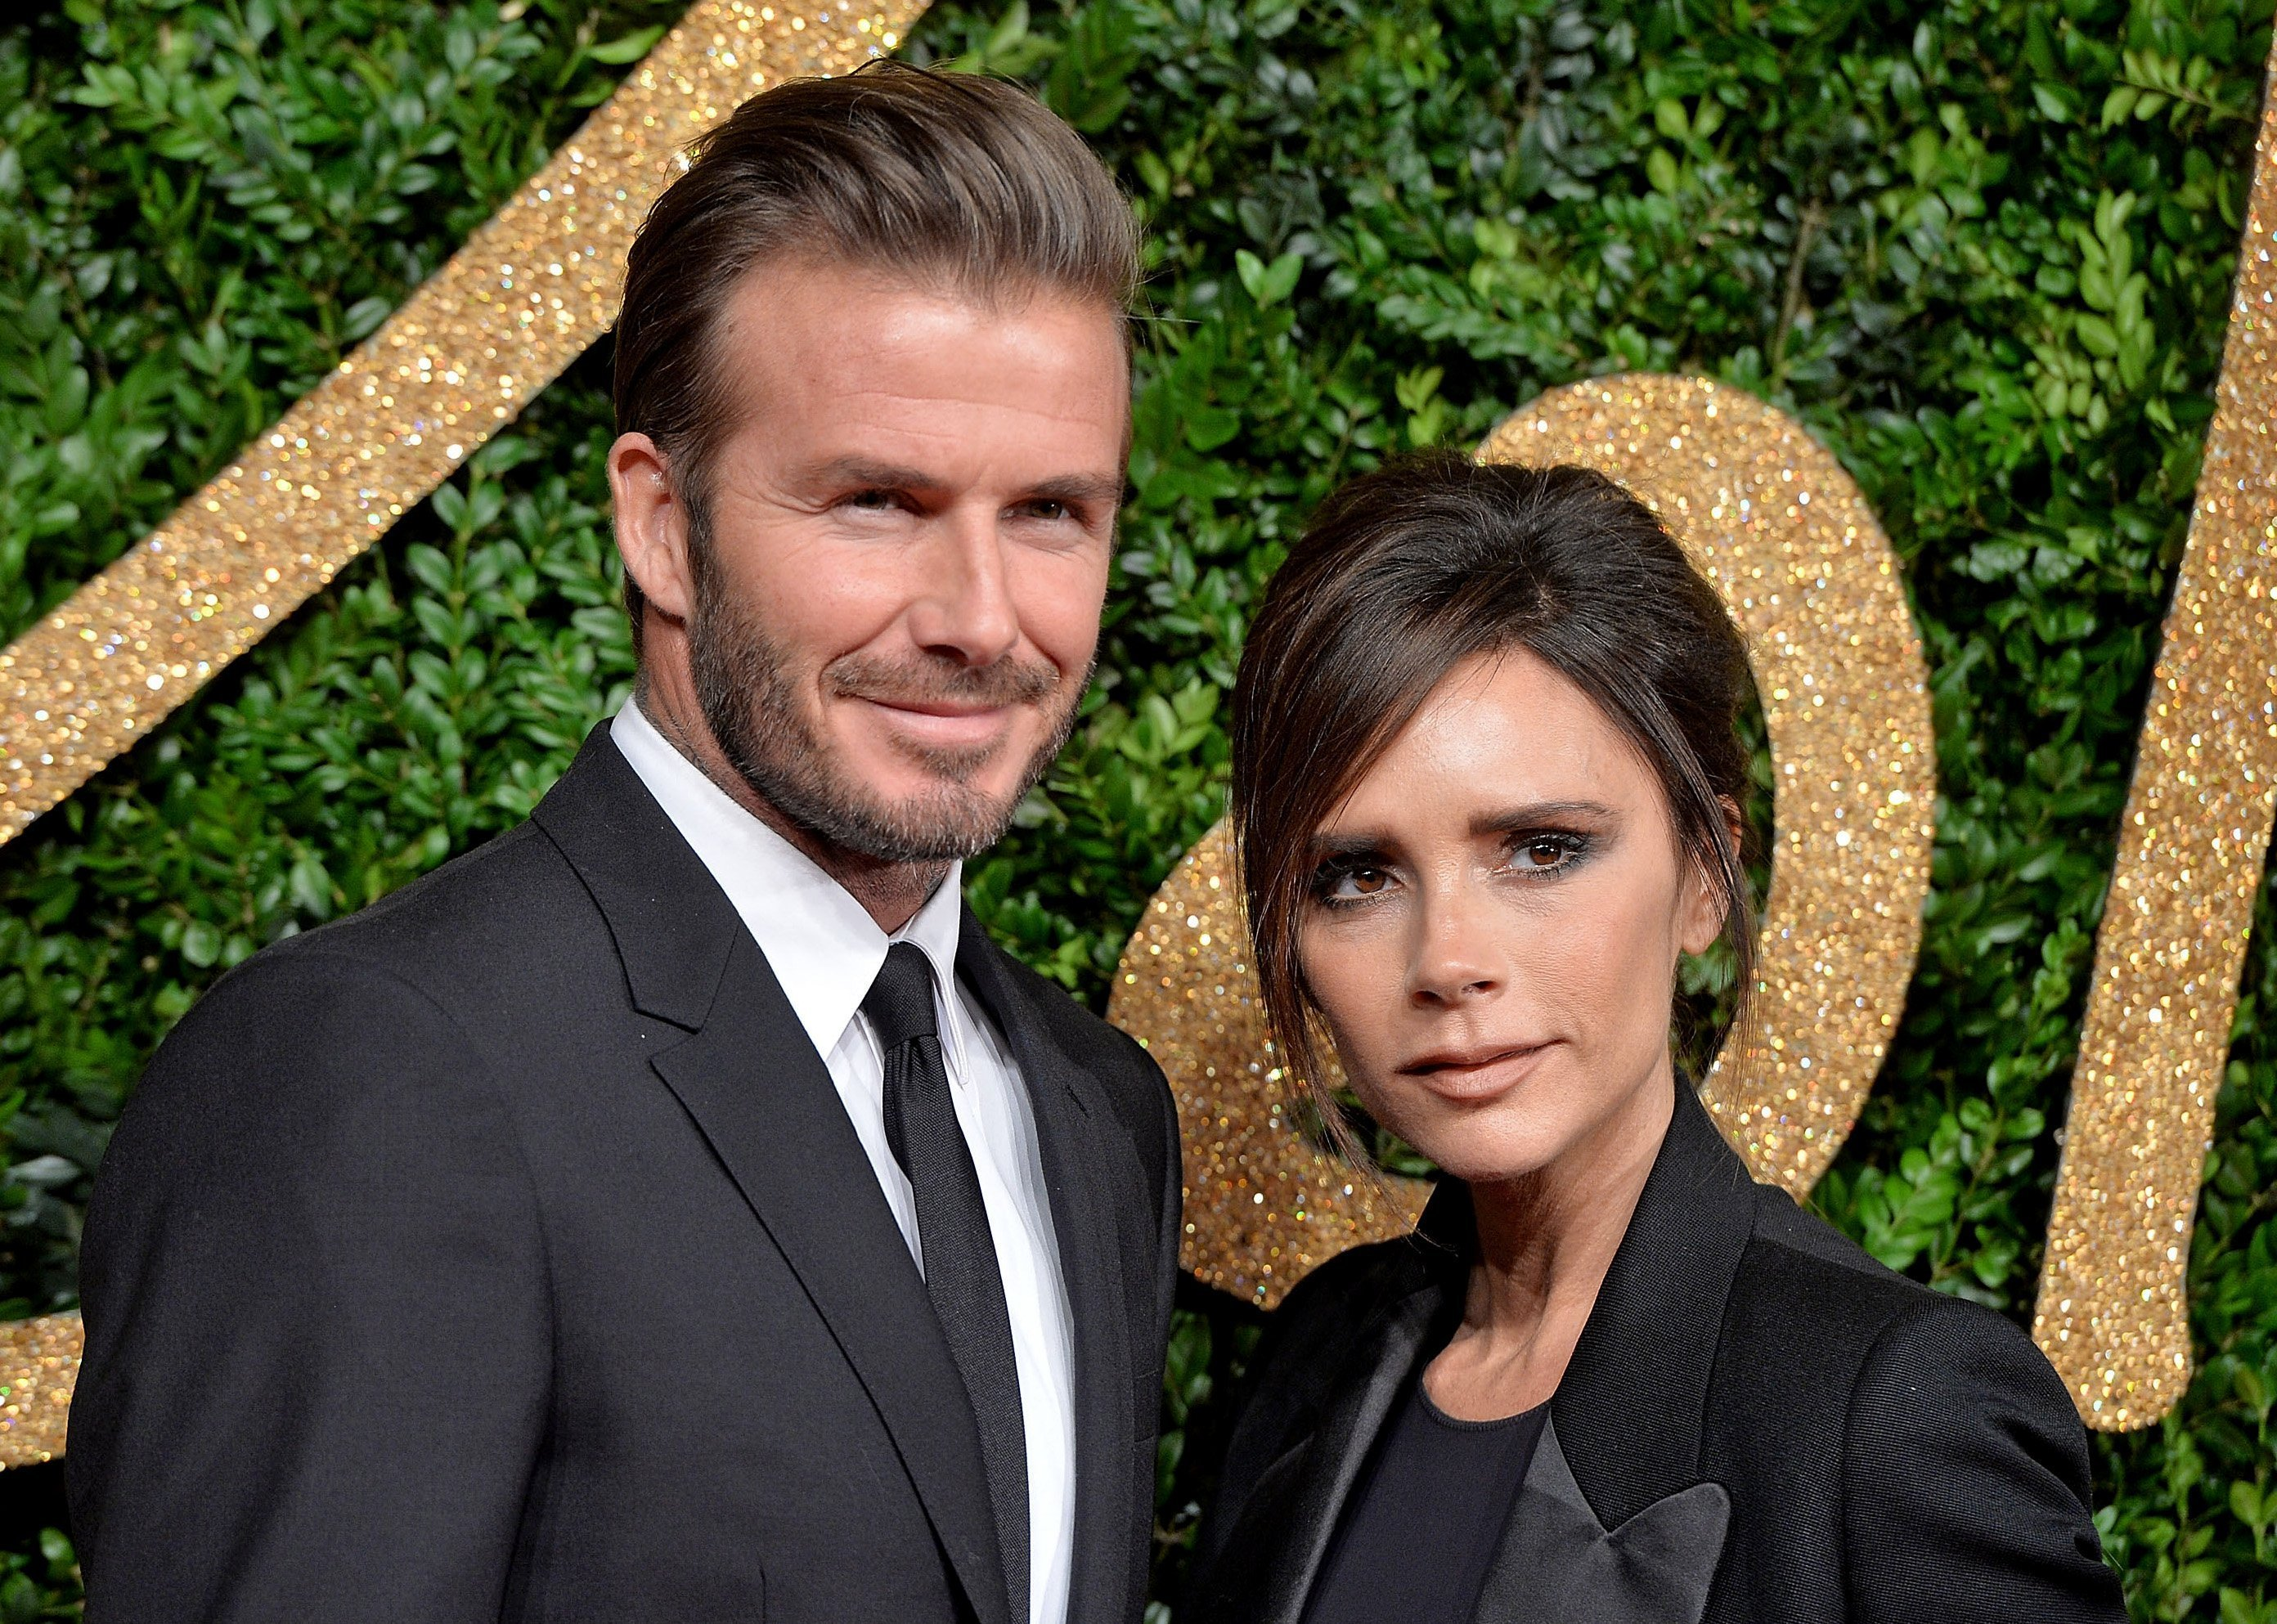 David und Victoria Beckham | Quelle: Getty Images